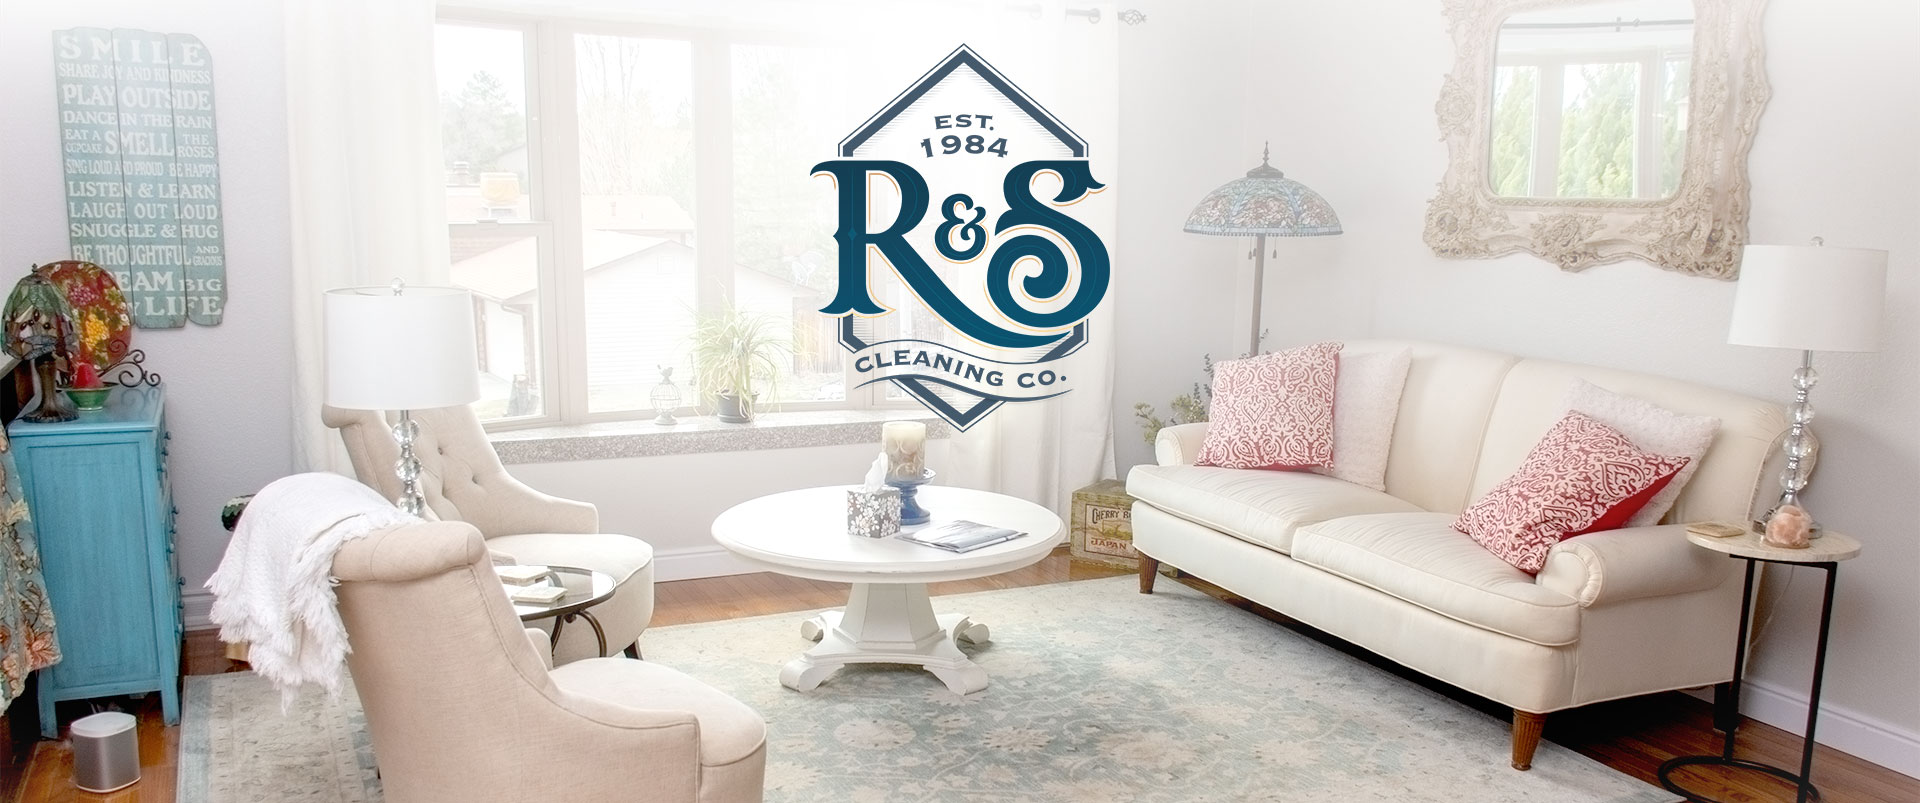 Rash & Son Carpet Cleaning Company